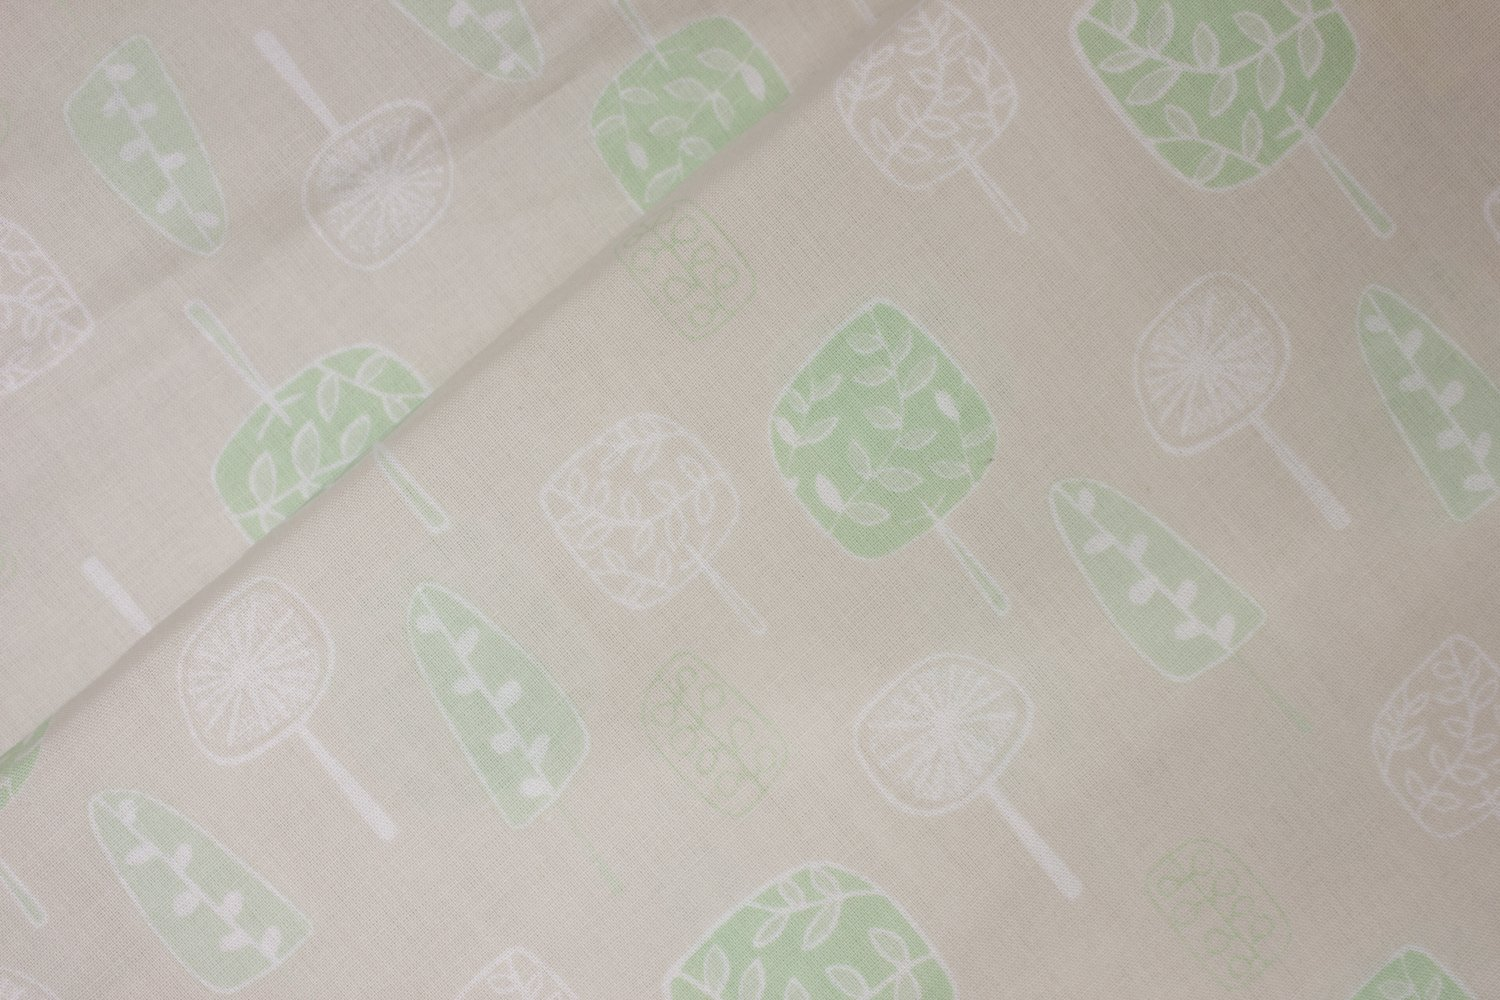 Cream Background with Green and White Flowers and Stems